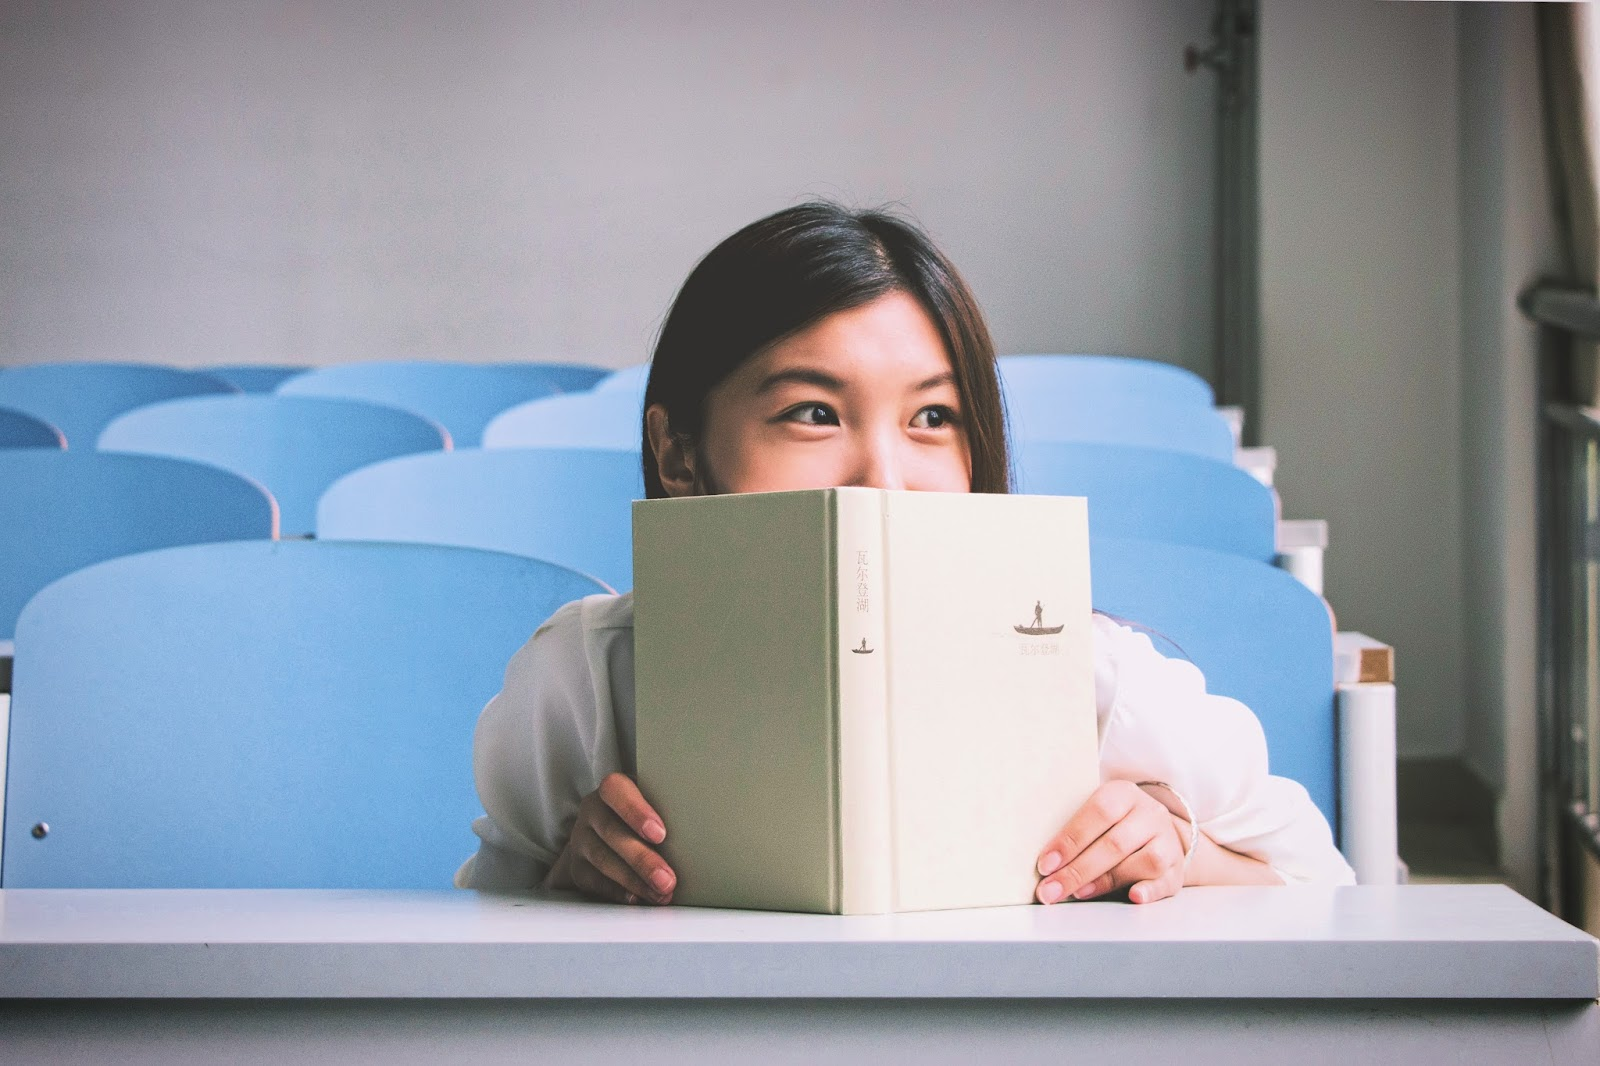 Smiling girl hiding behind a book in a lecture theatre with blue chairs